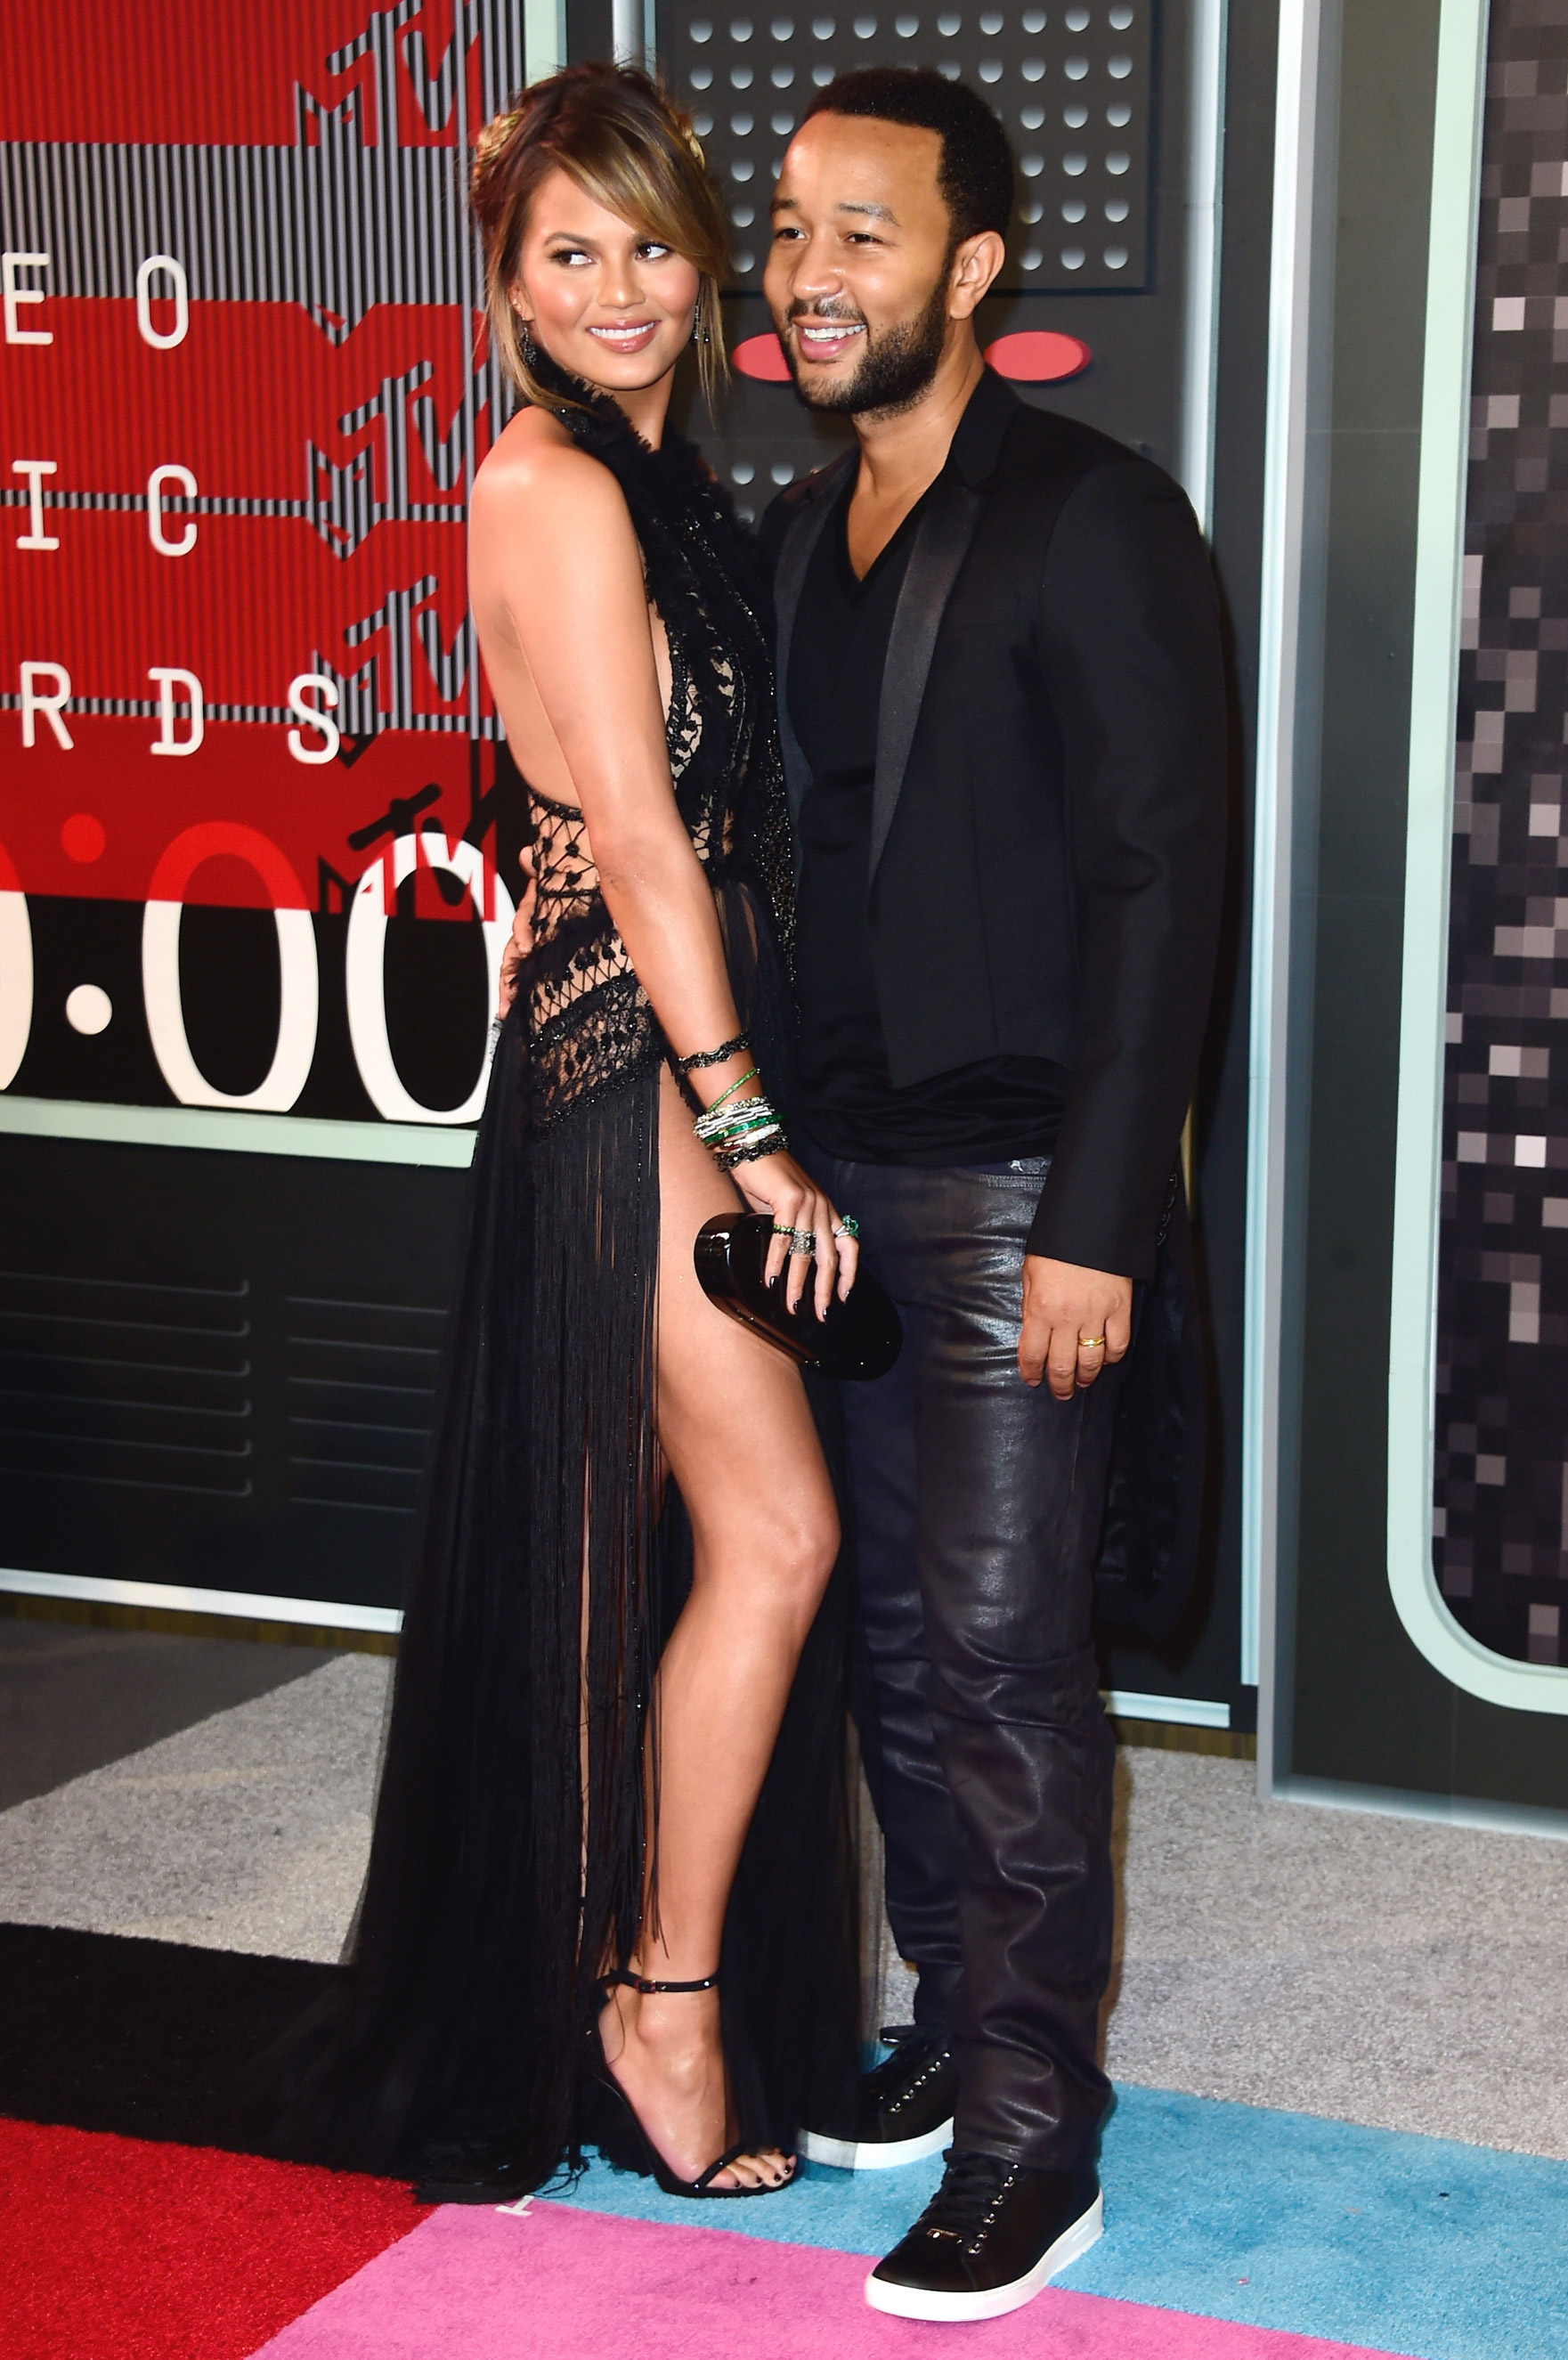 From left:  Chrissy Teigen and  John Legend arrives at the 2015 MTV Video Music Awards at Microsoft Theater on Aug. 30, 2015 in Los Angeles.